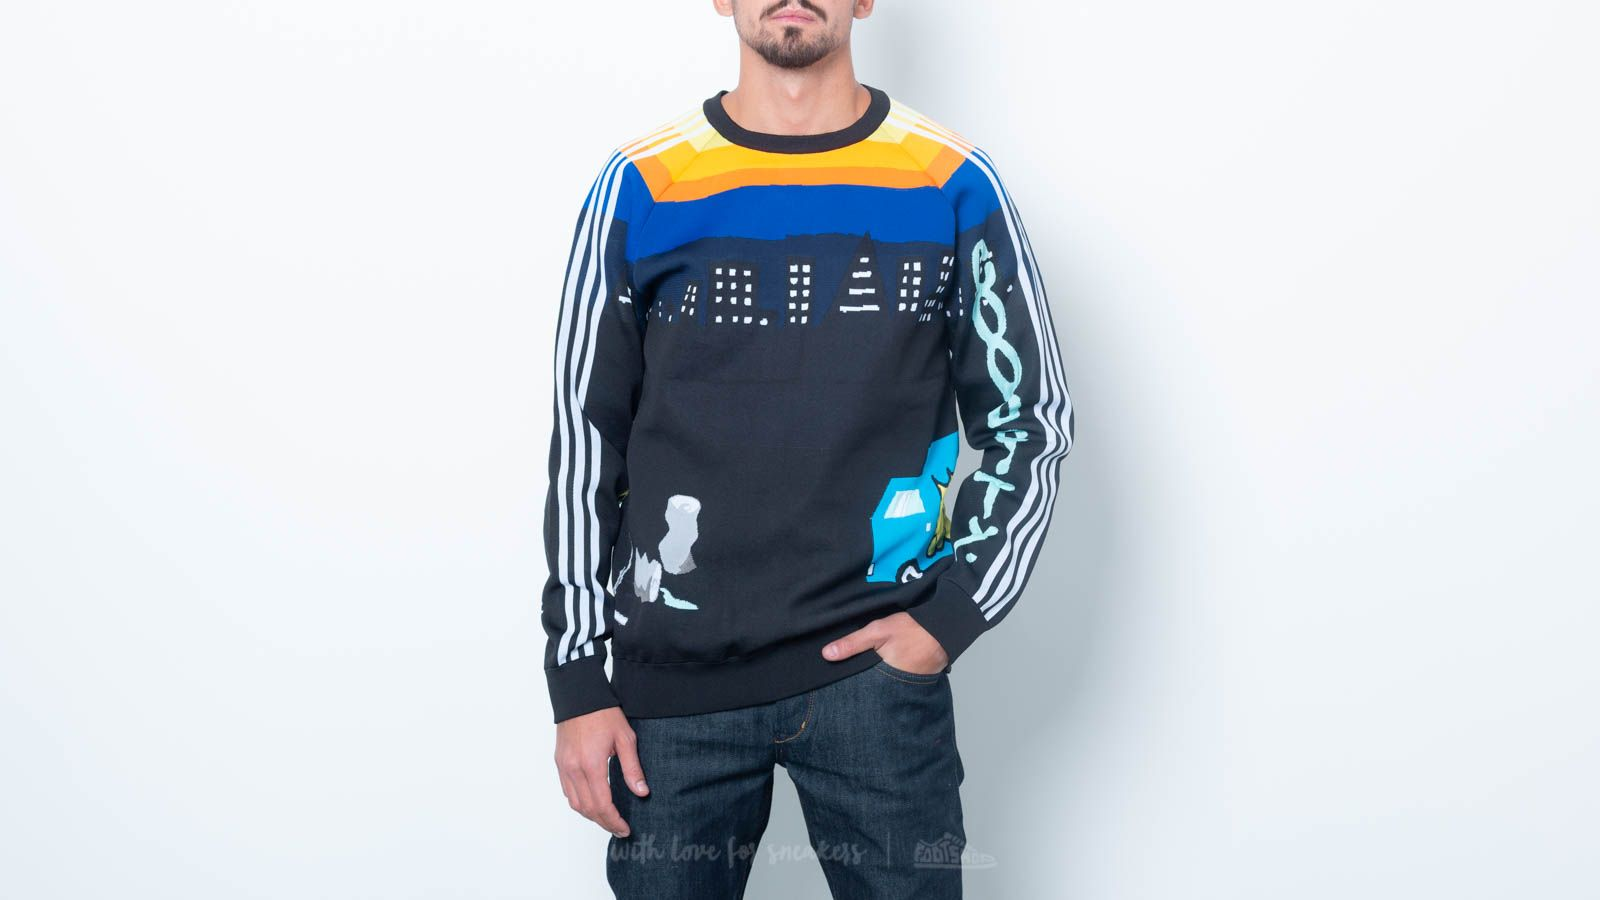 adidas x United Arrows & Sons Knit Tops Crewneck